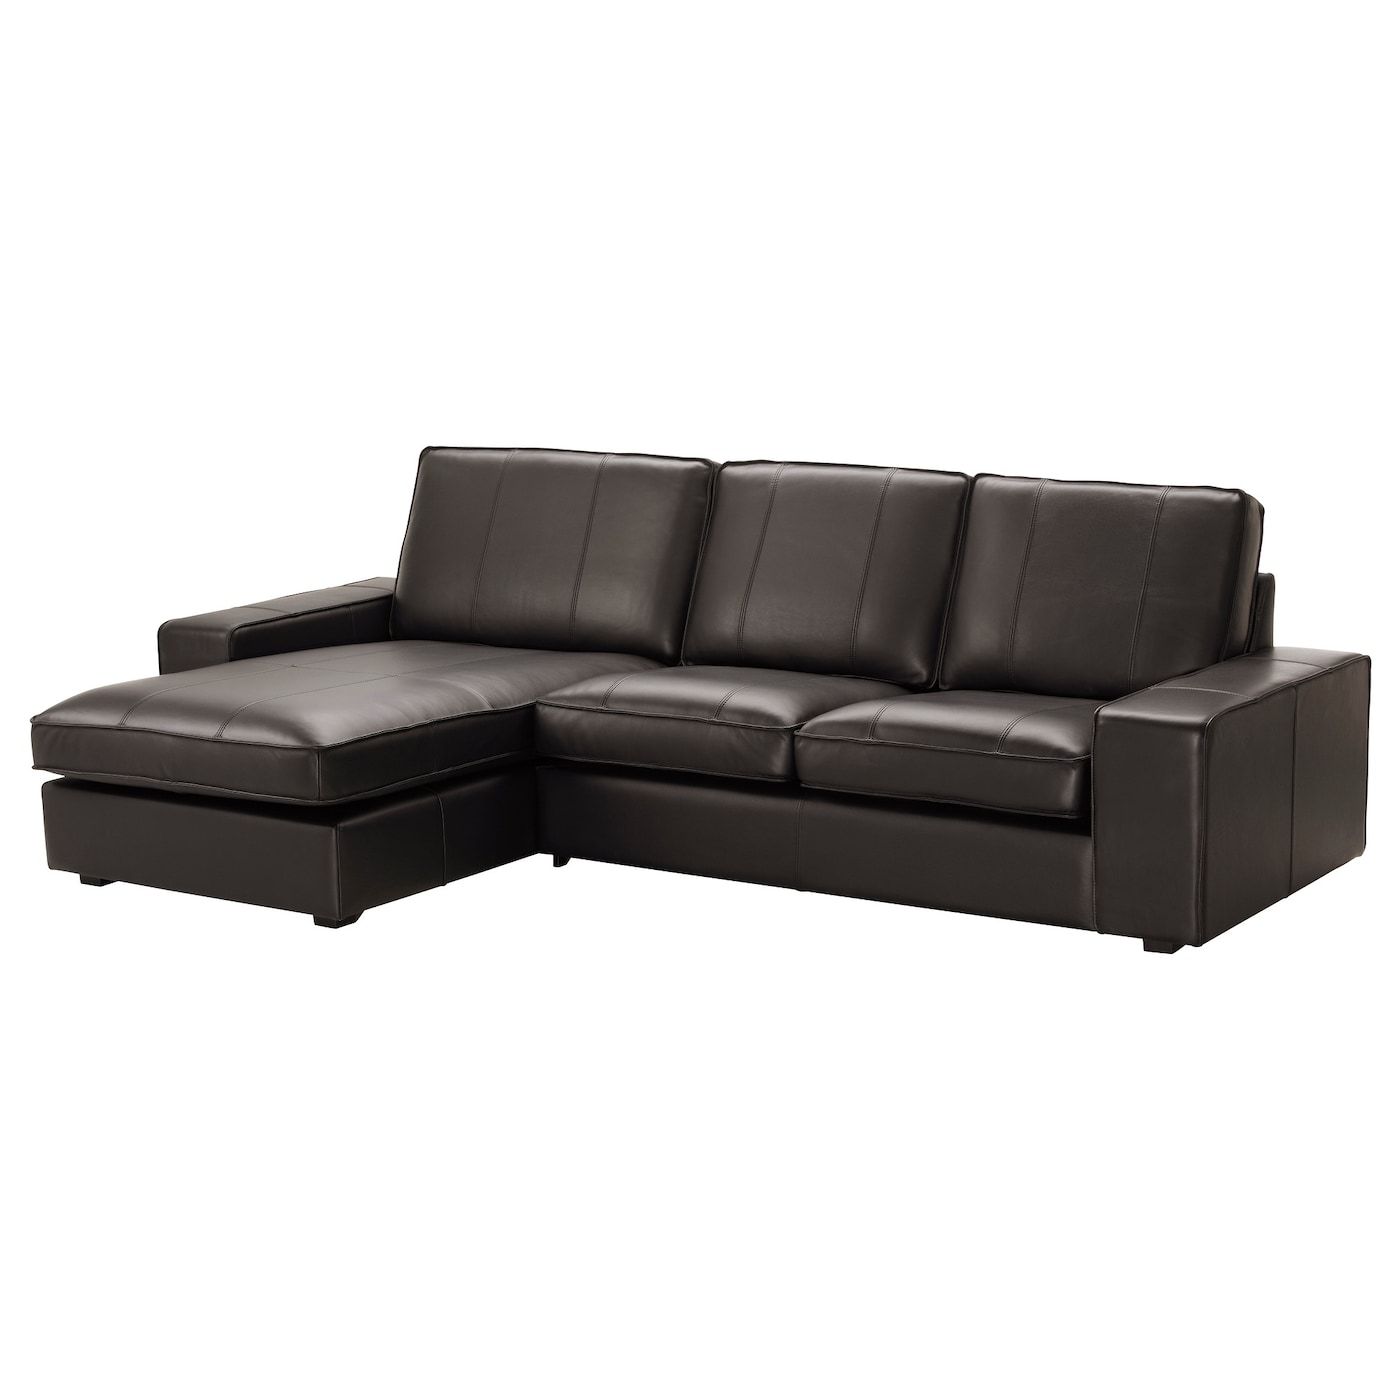 Leather coated fabric sofas ikea for Chaise longue bascule 2 places